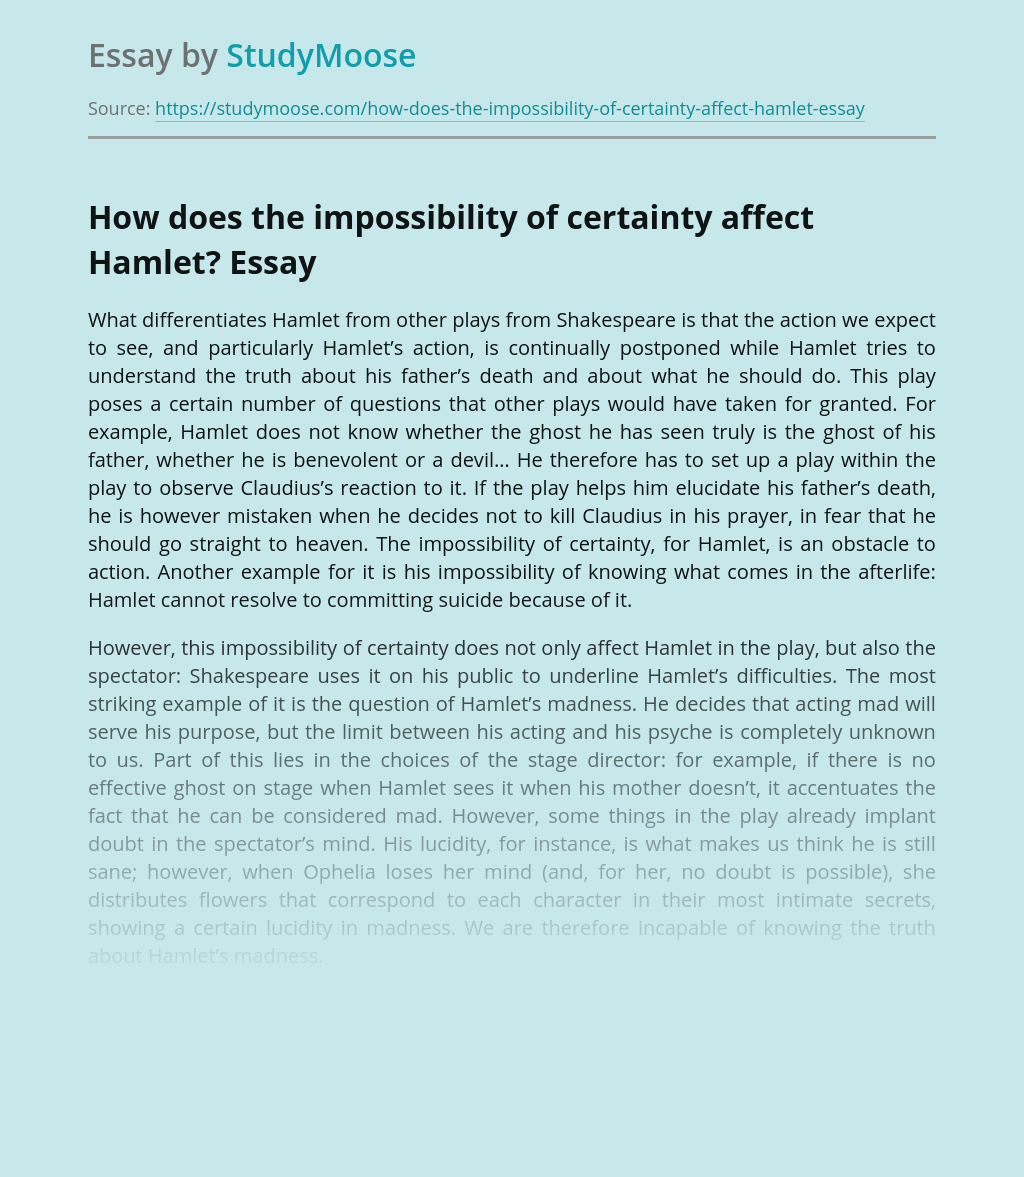 How does the impossibility of certainty affect Hamlet?